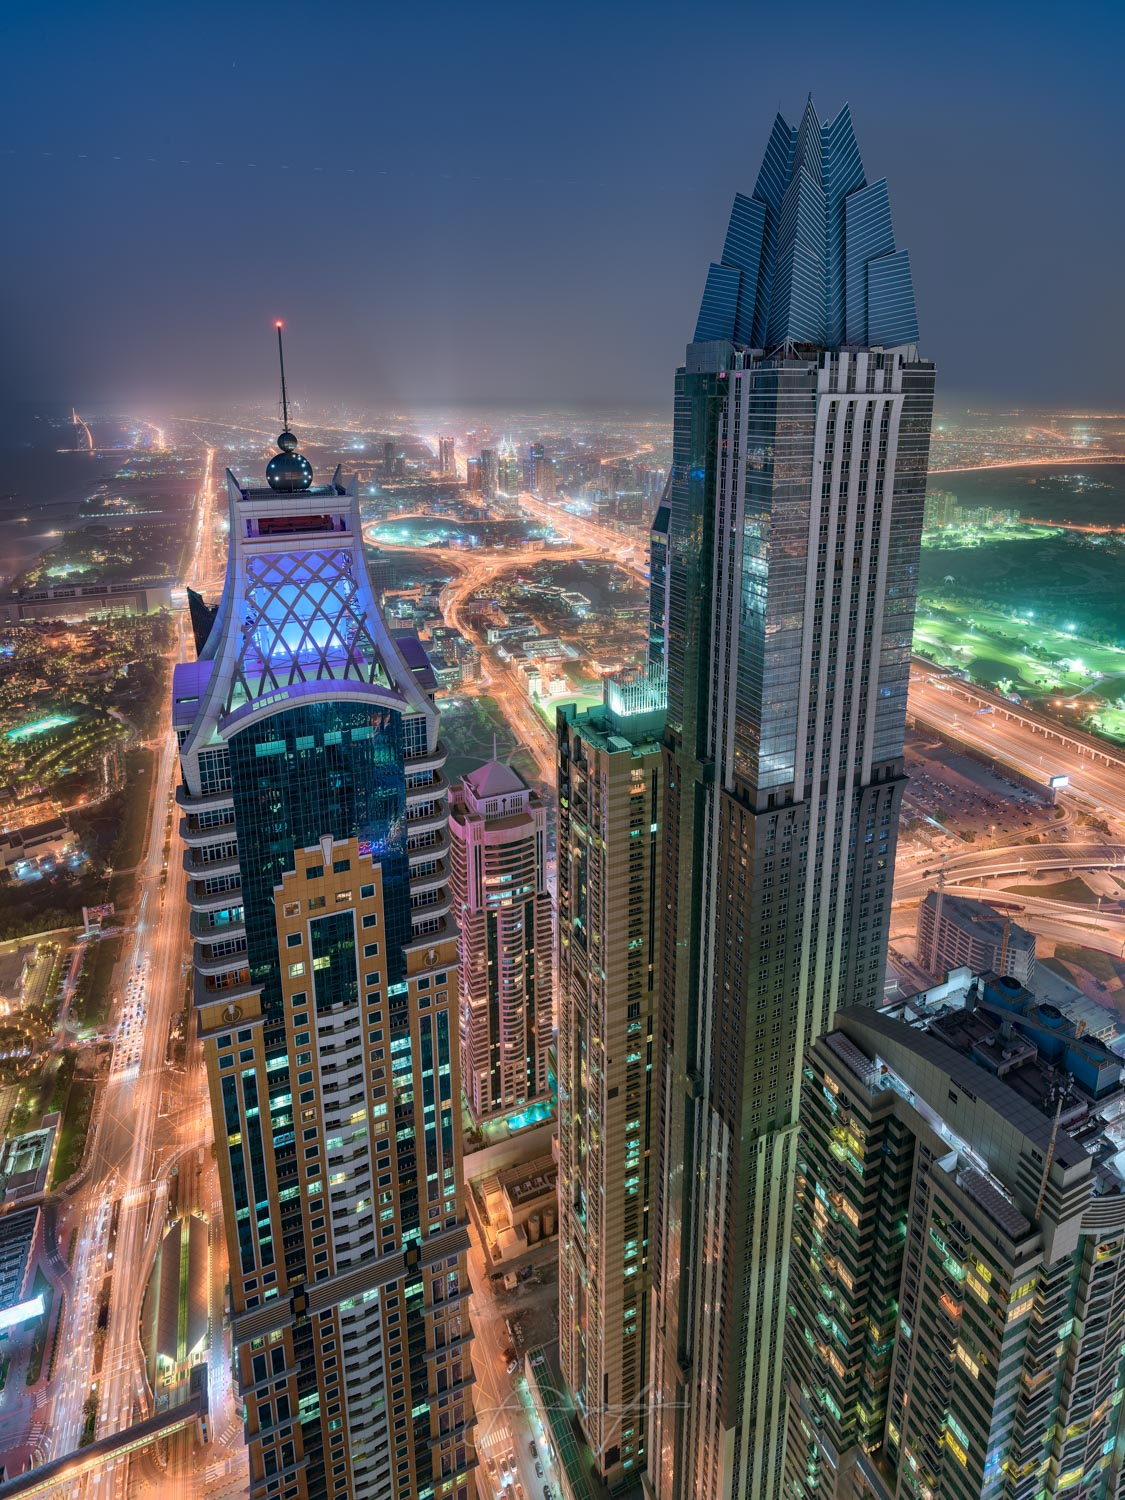 The tallest hotel in the world